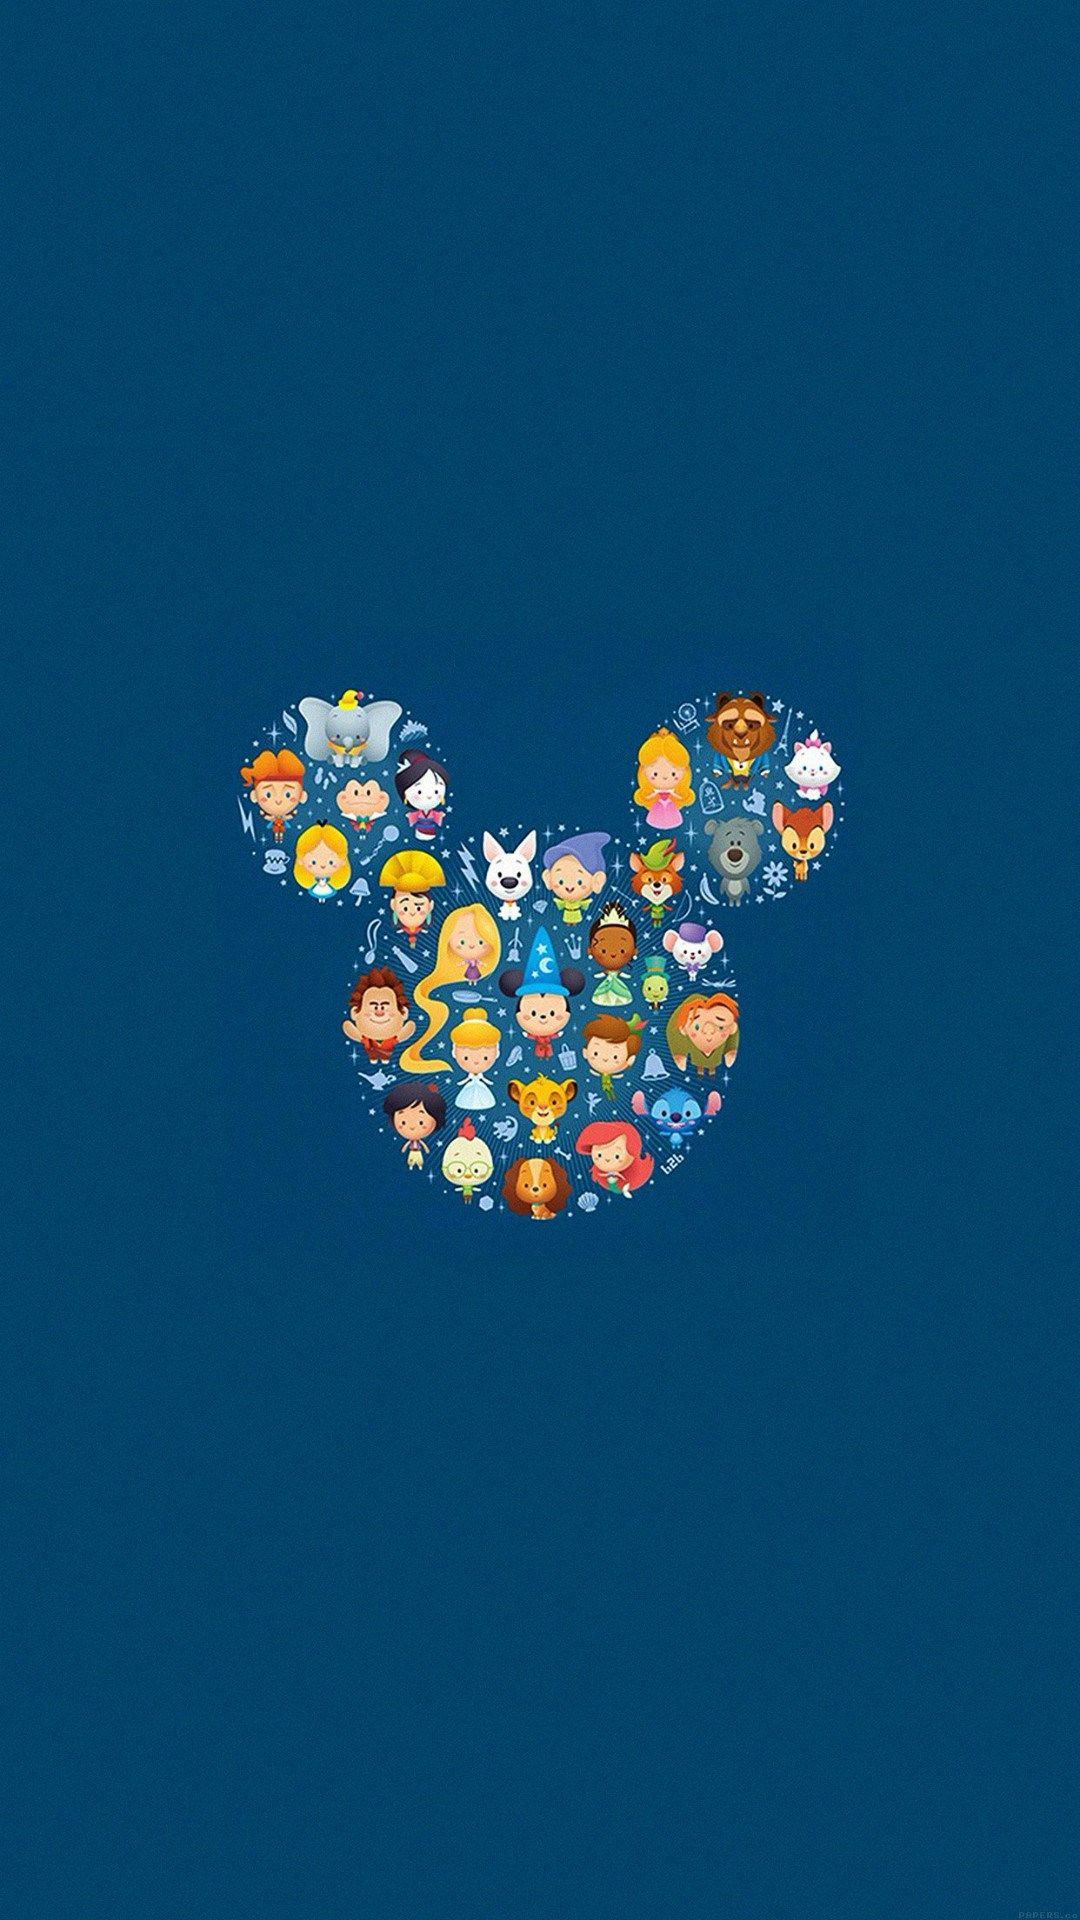 Disney Characters IPhone Wallpapers Top Free Disney